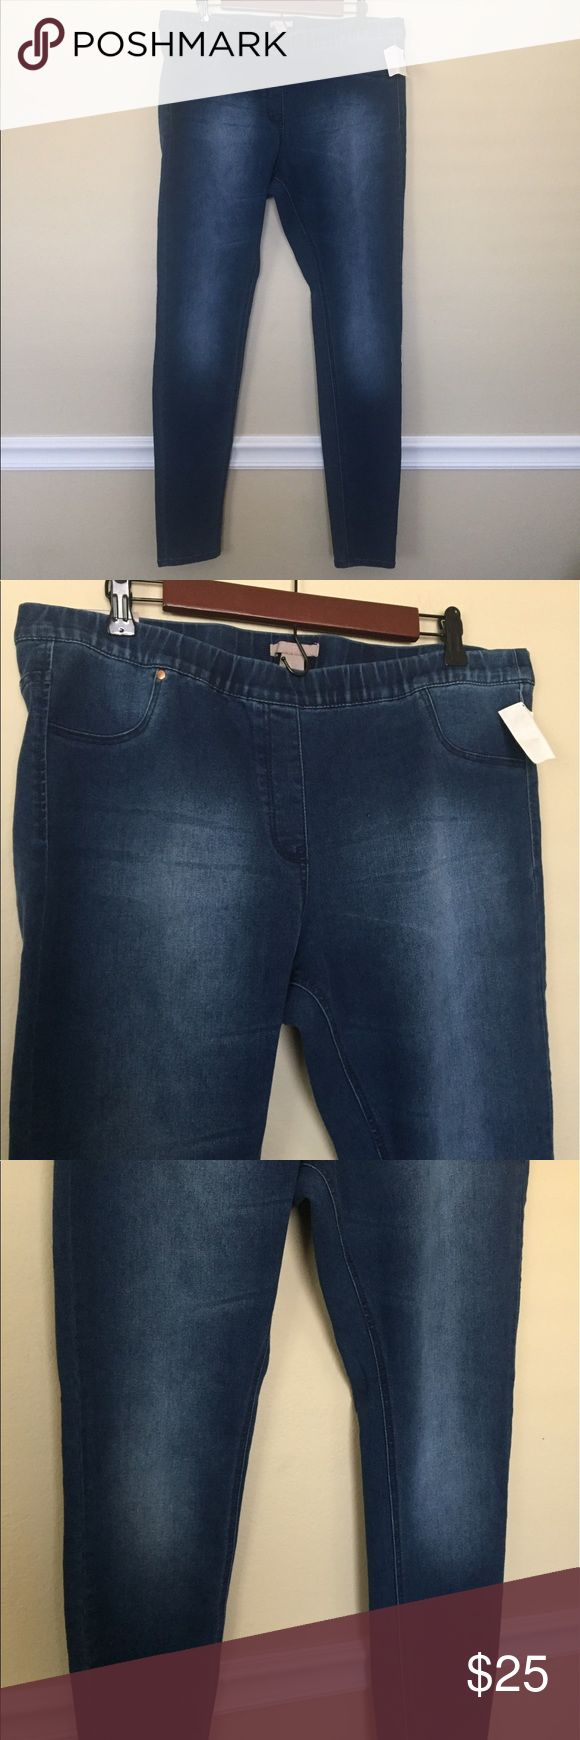 H&M Jeans Blue super slim skinny jeans from H&M size 18. They have a stretchy waistband, super comfortable jeans! Brand new with tag. H&M Jeans Skinny